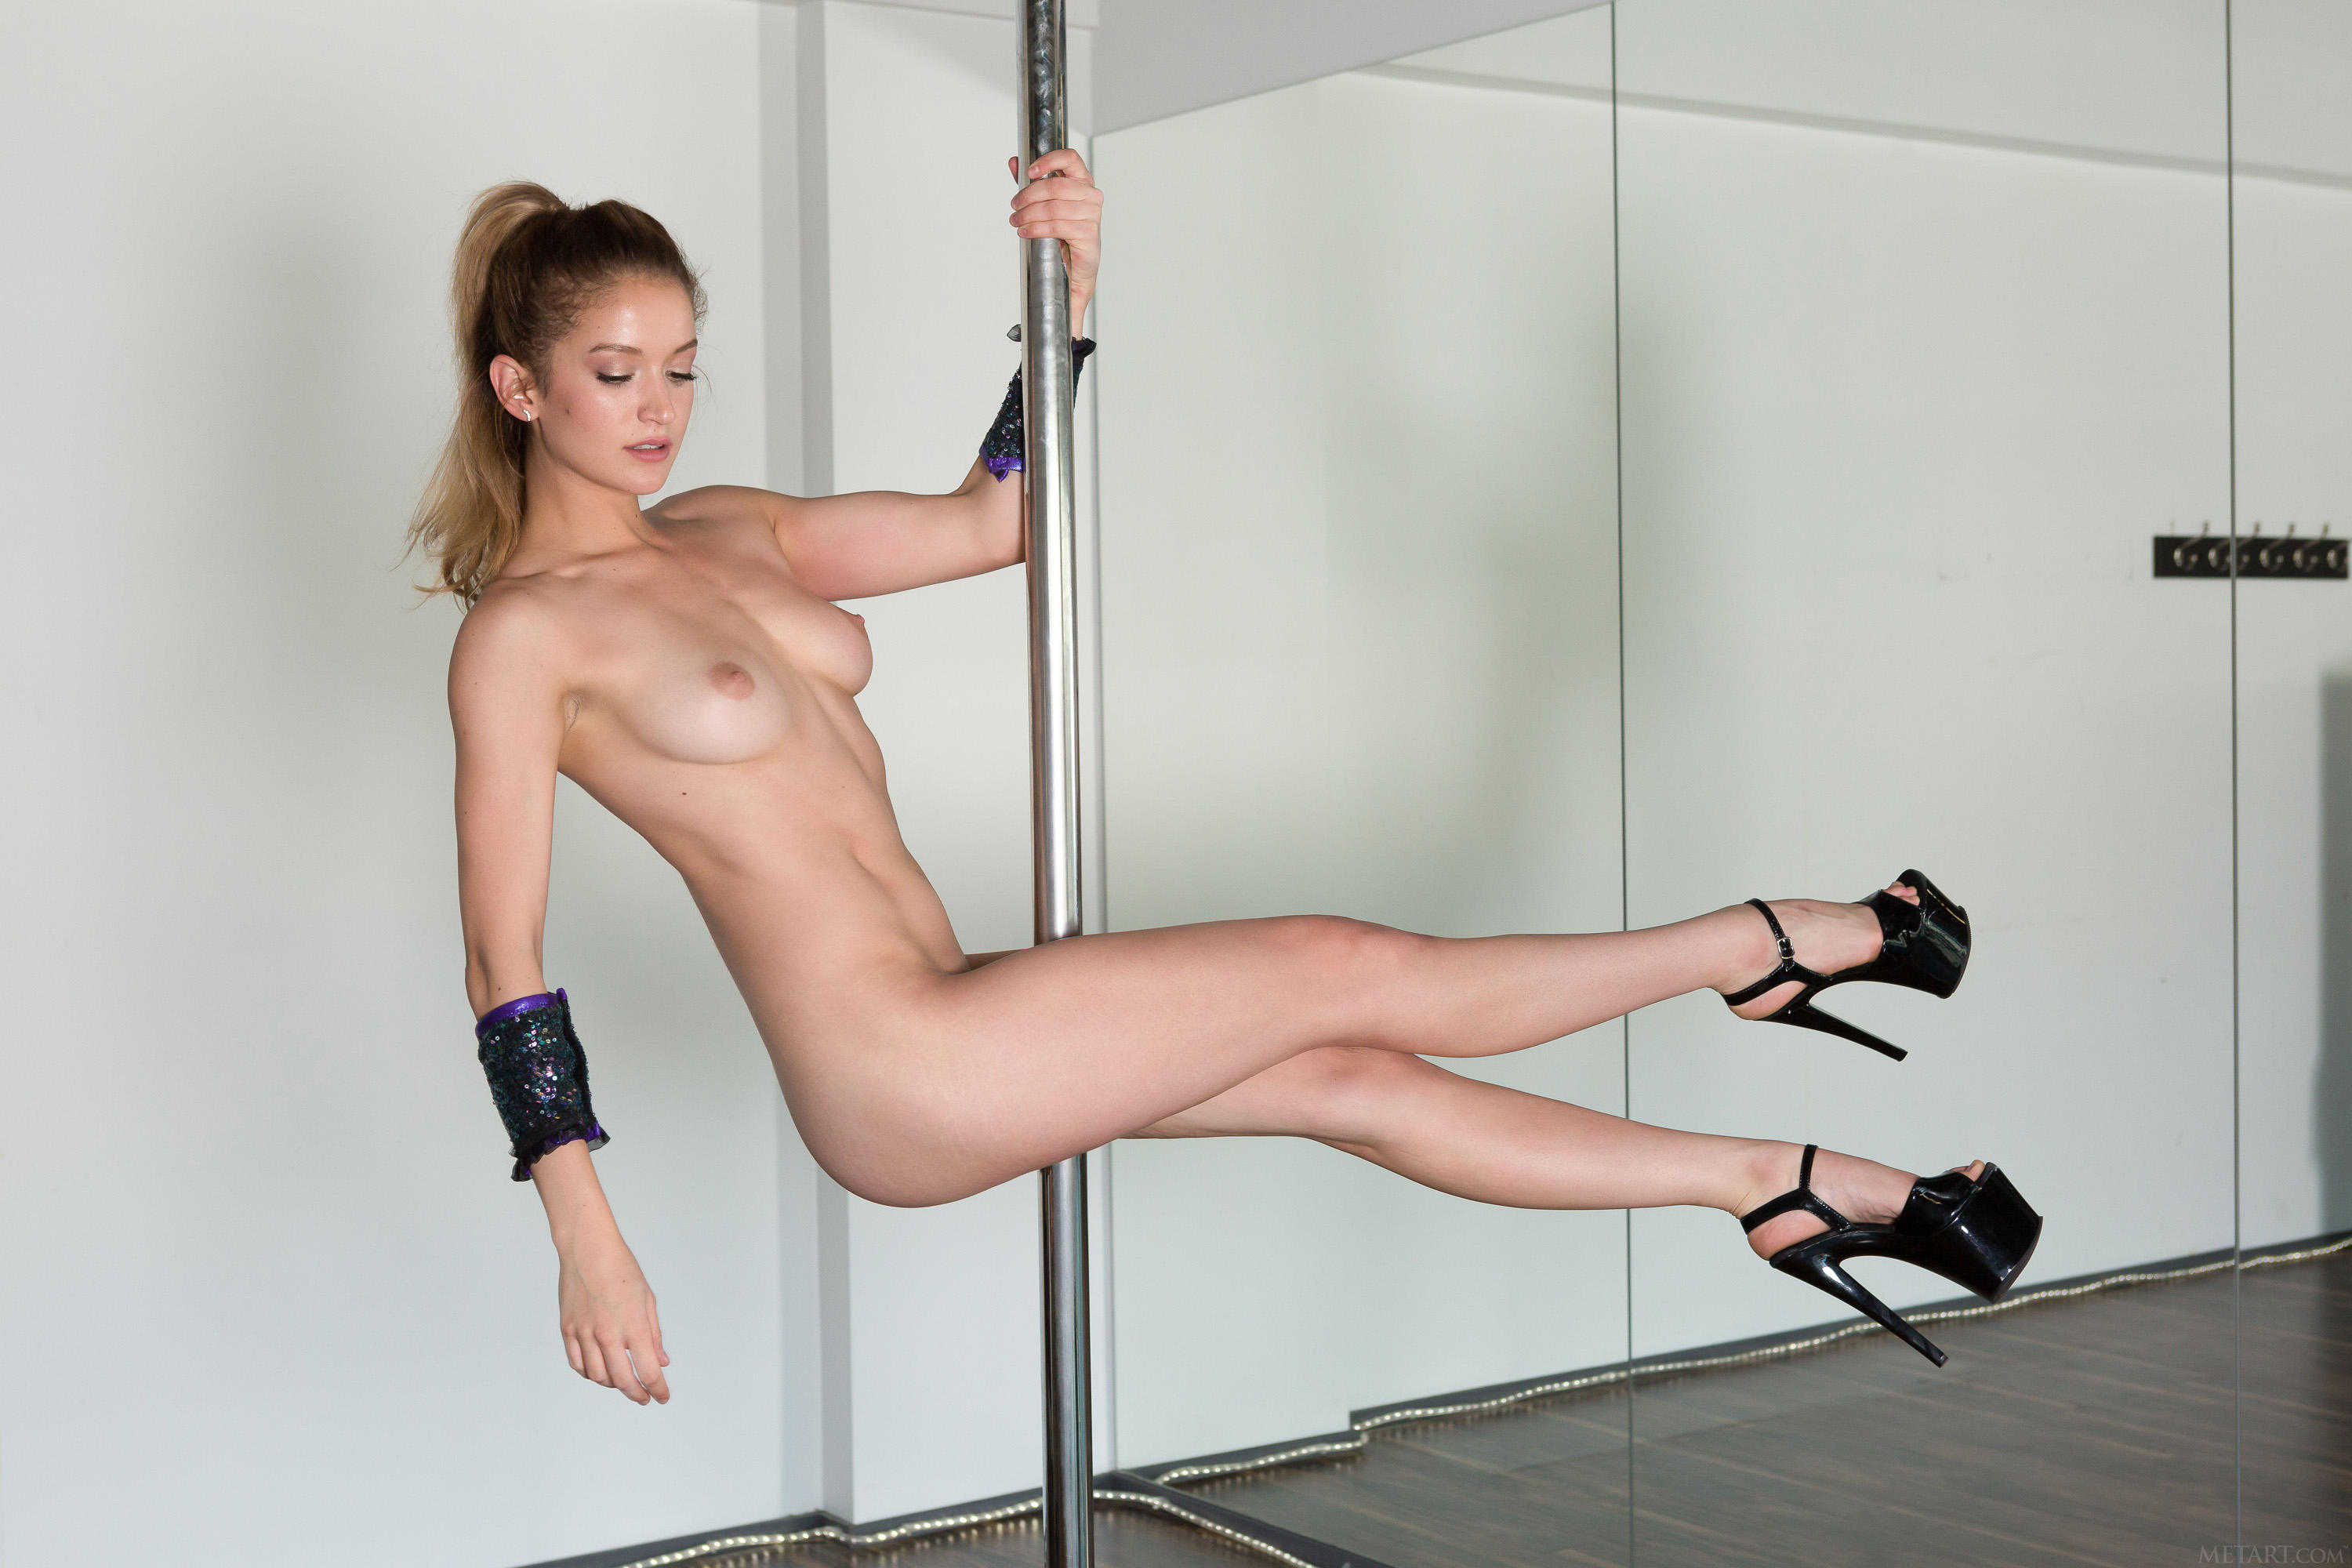 Hot girl flexible pole naked